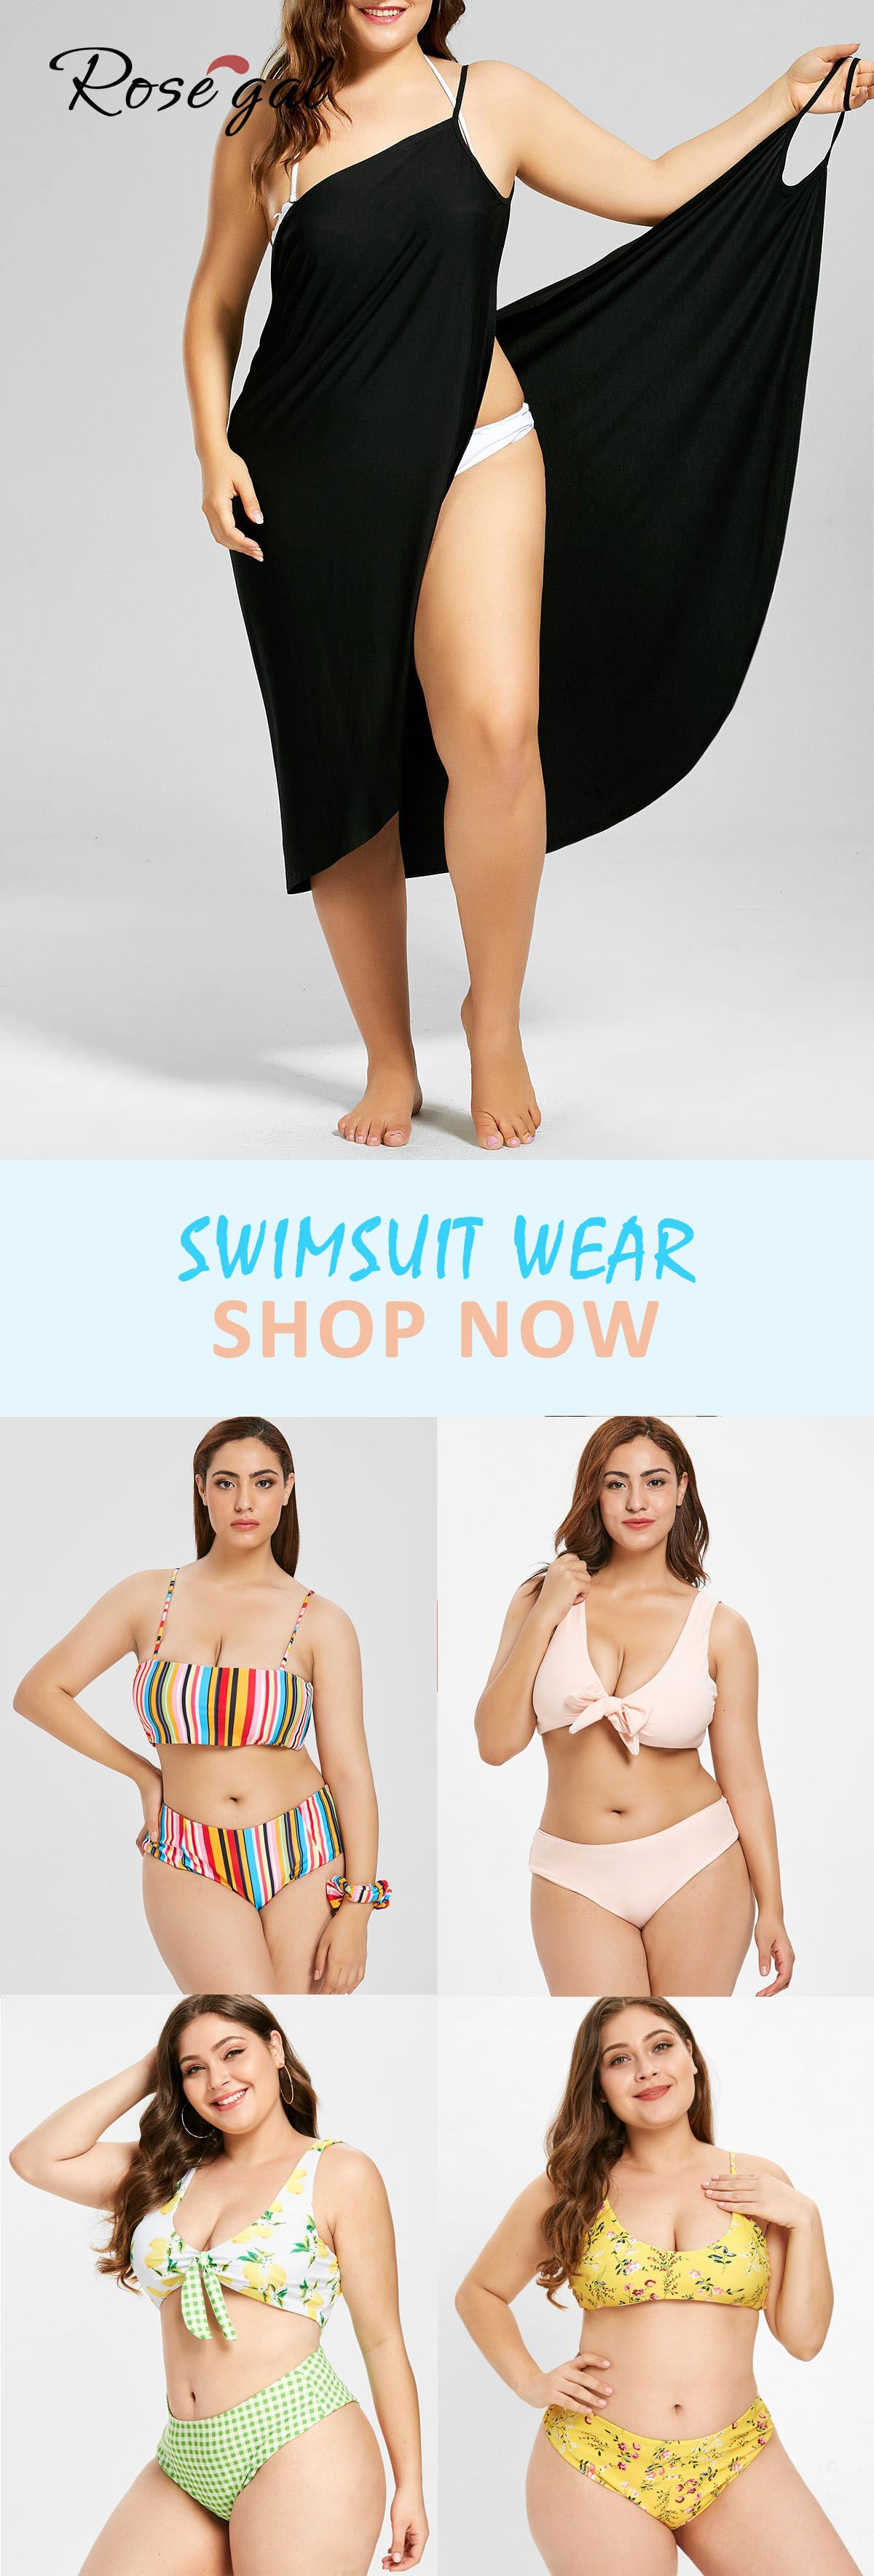 8ec0072121 Free shipping over $45, up to 70% off, Rosegal plus size swimsuit ...